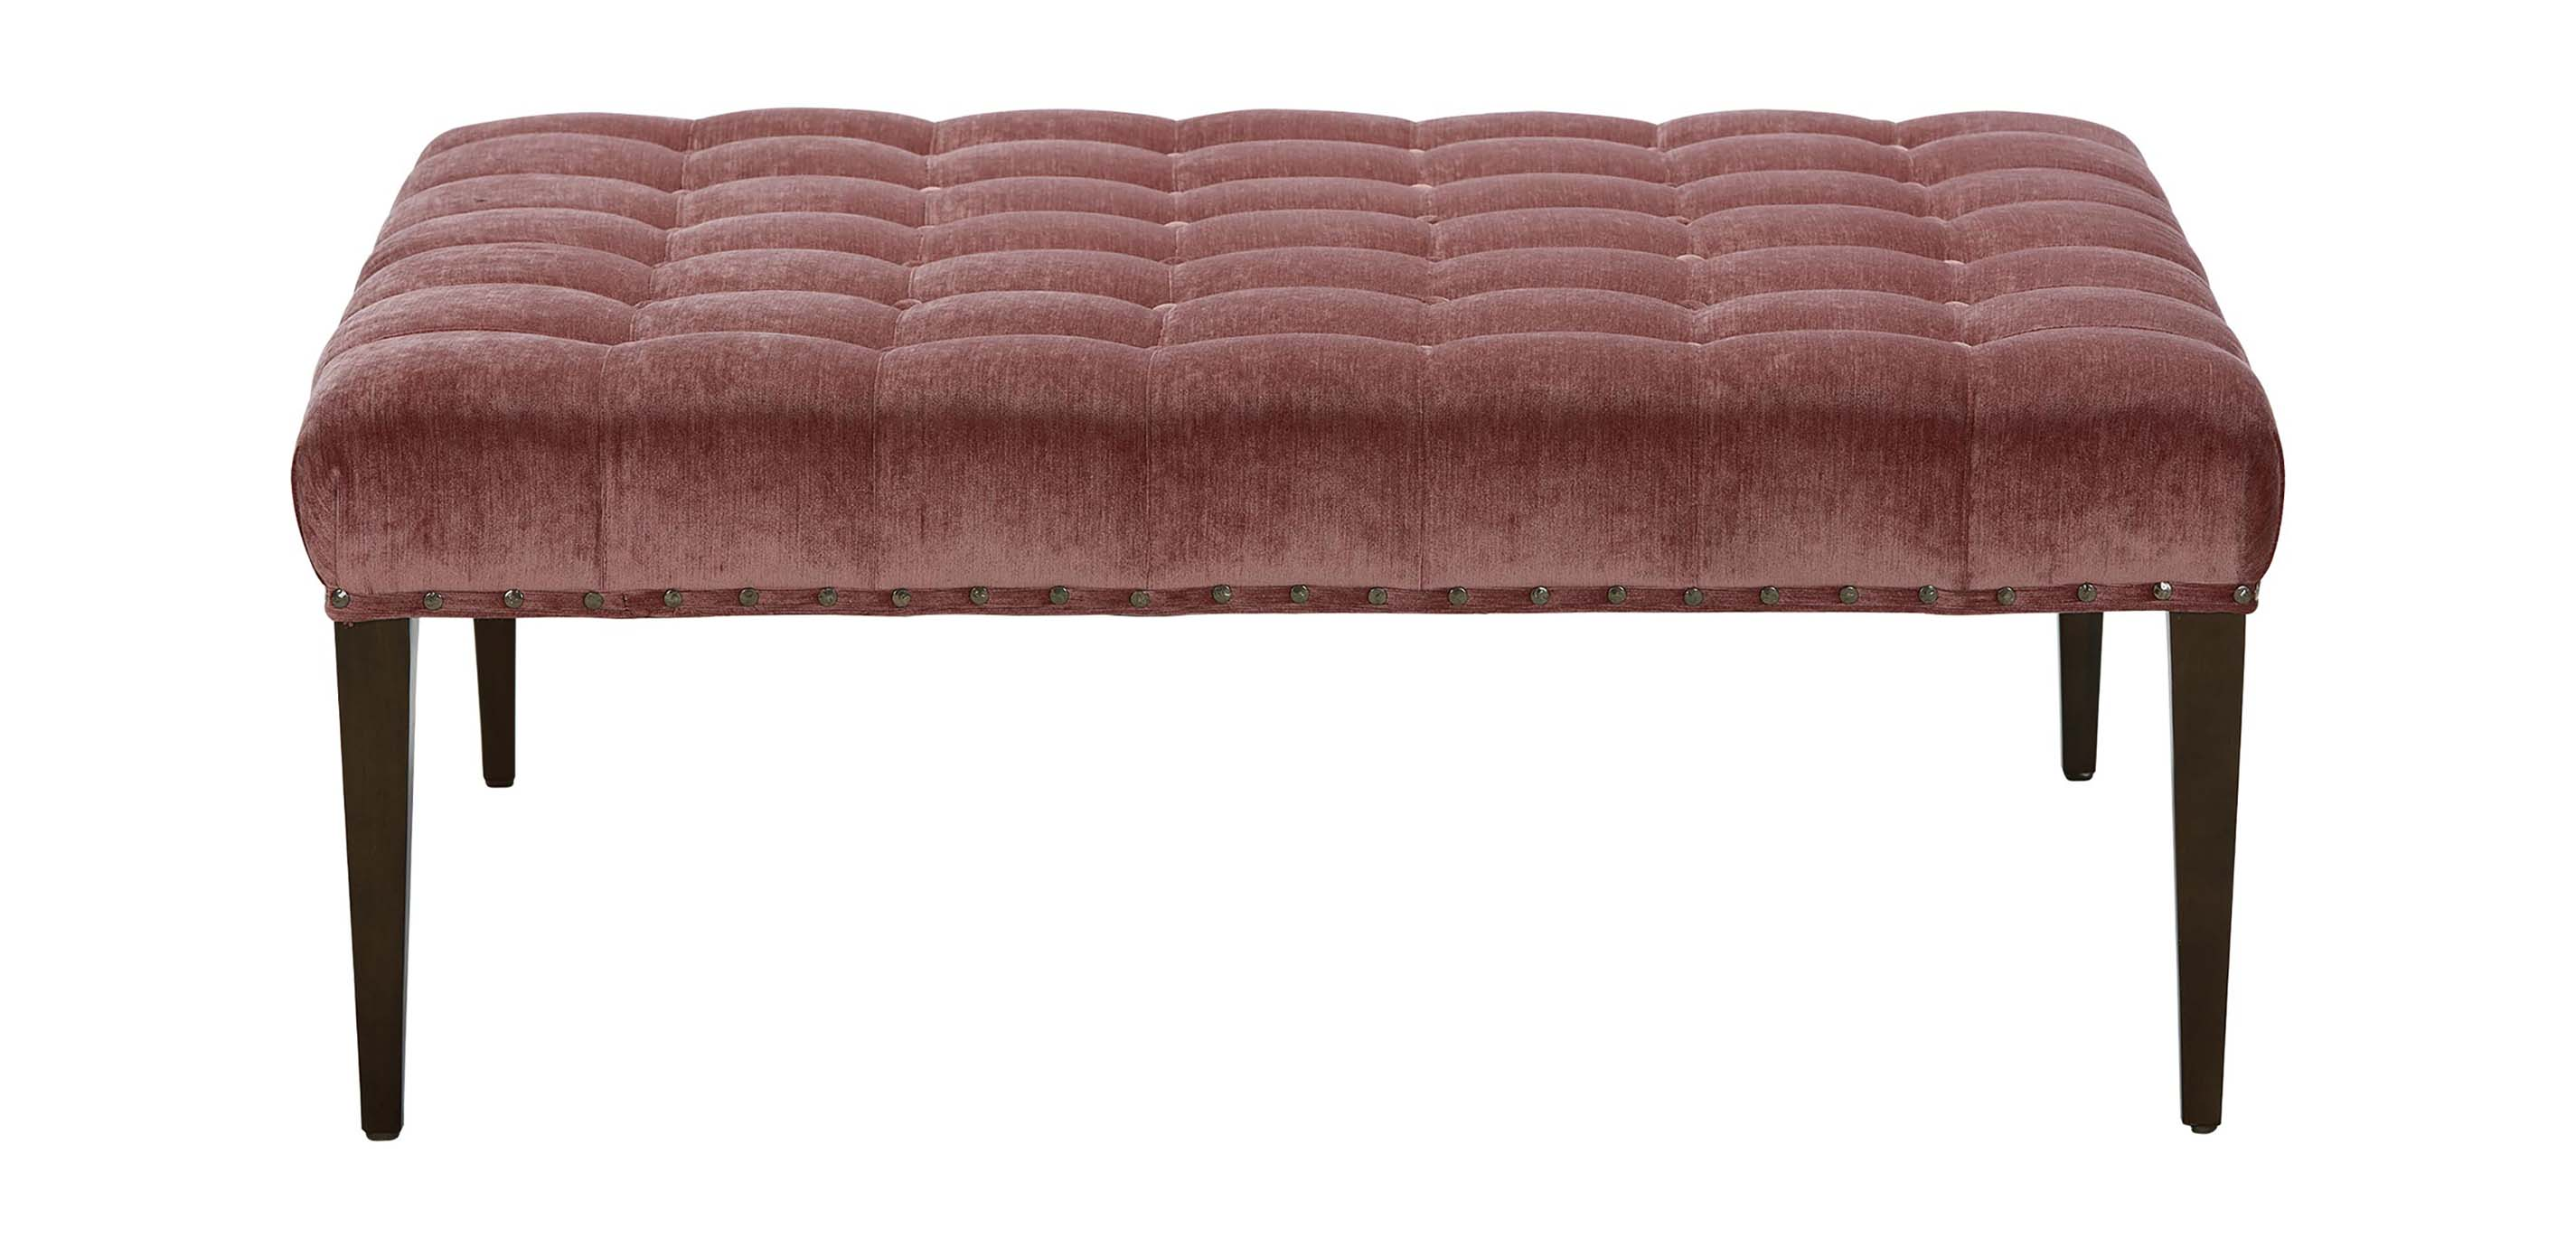 brown ottoman suttonsbaysuttons go cocktail oto to lr bay rooms color rico puerto product suttons